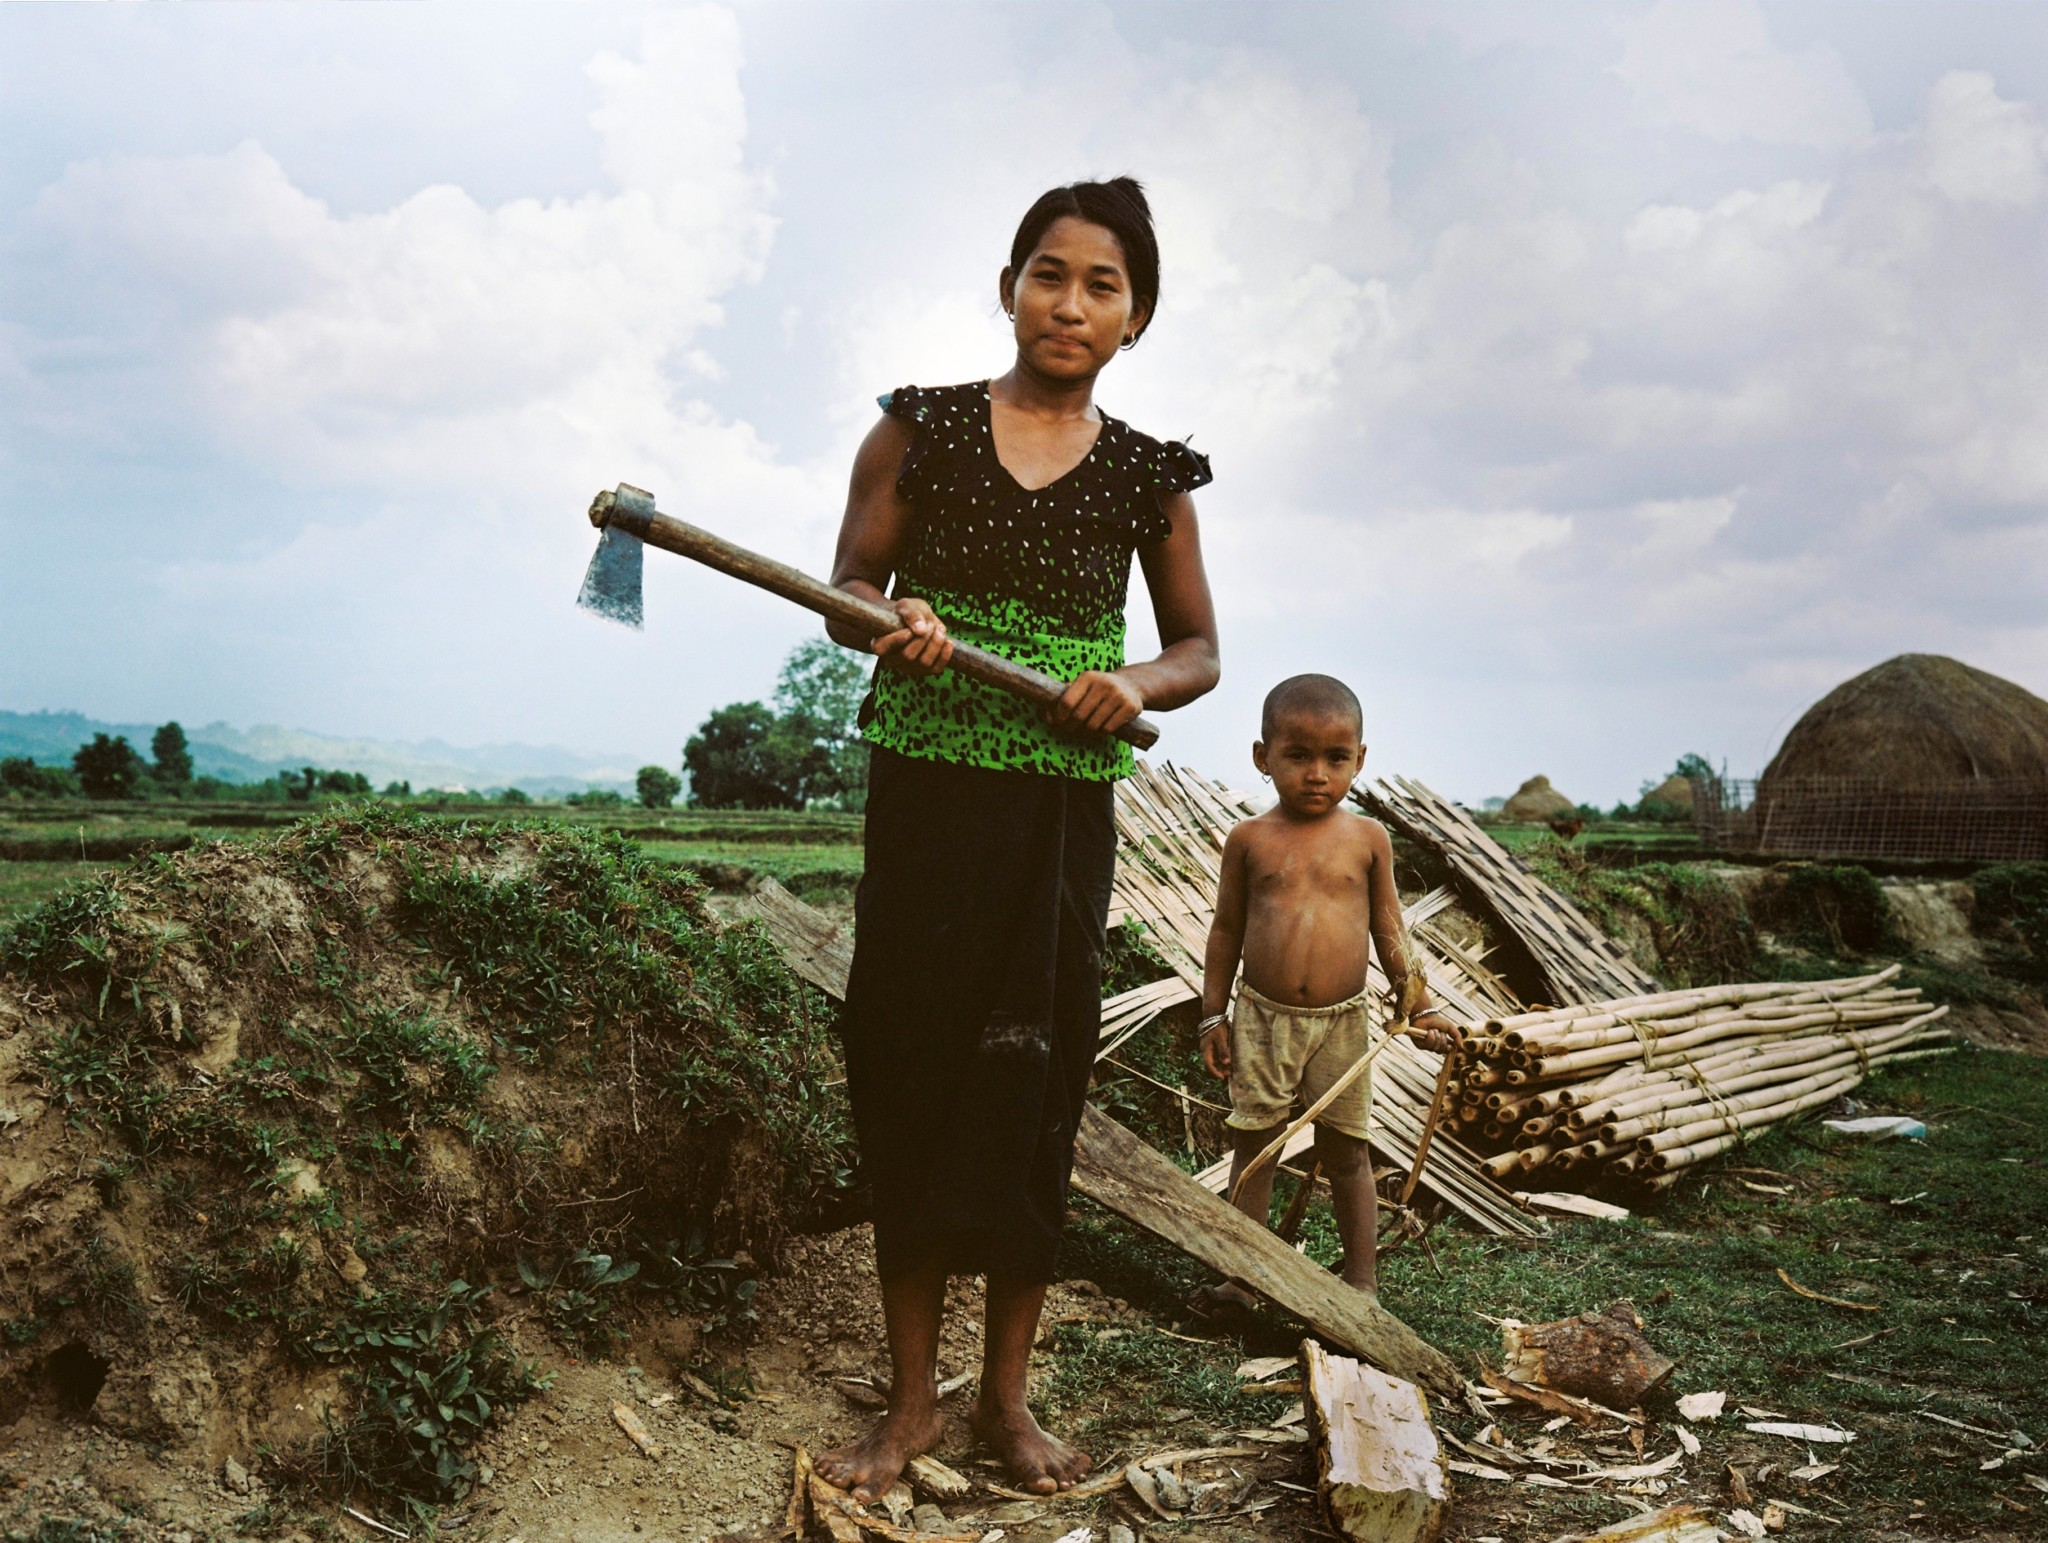 Rakhine State is one of the poorest in Myanmar, causing tension between the armed rebel groups and the Myanmar government.